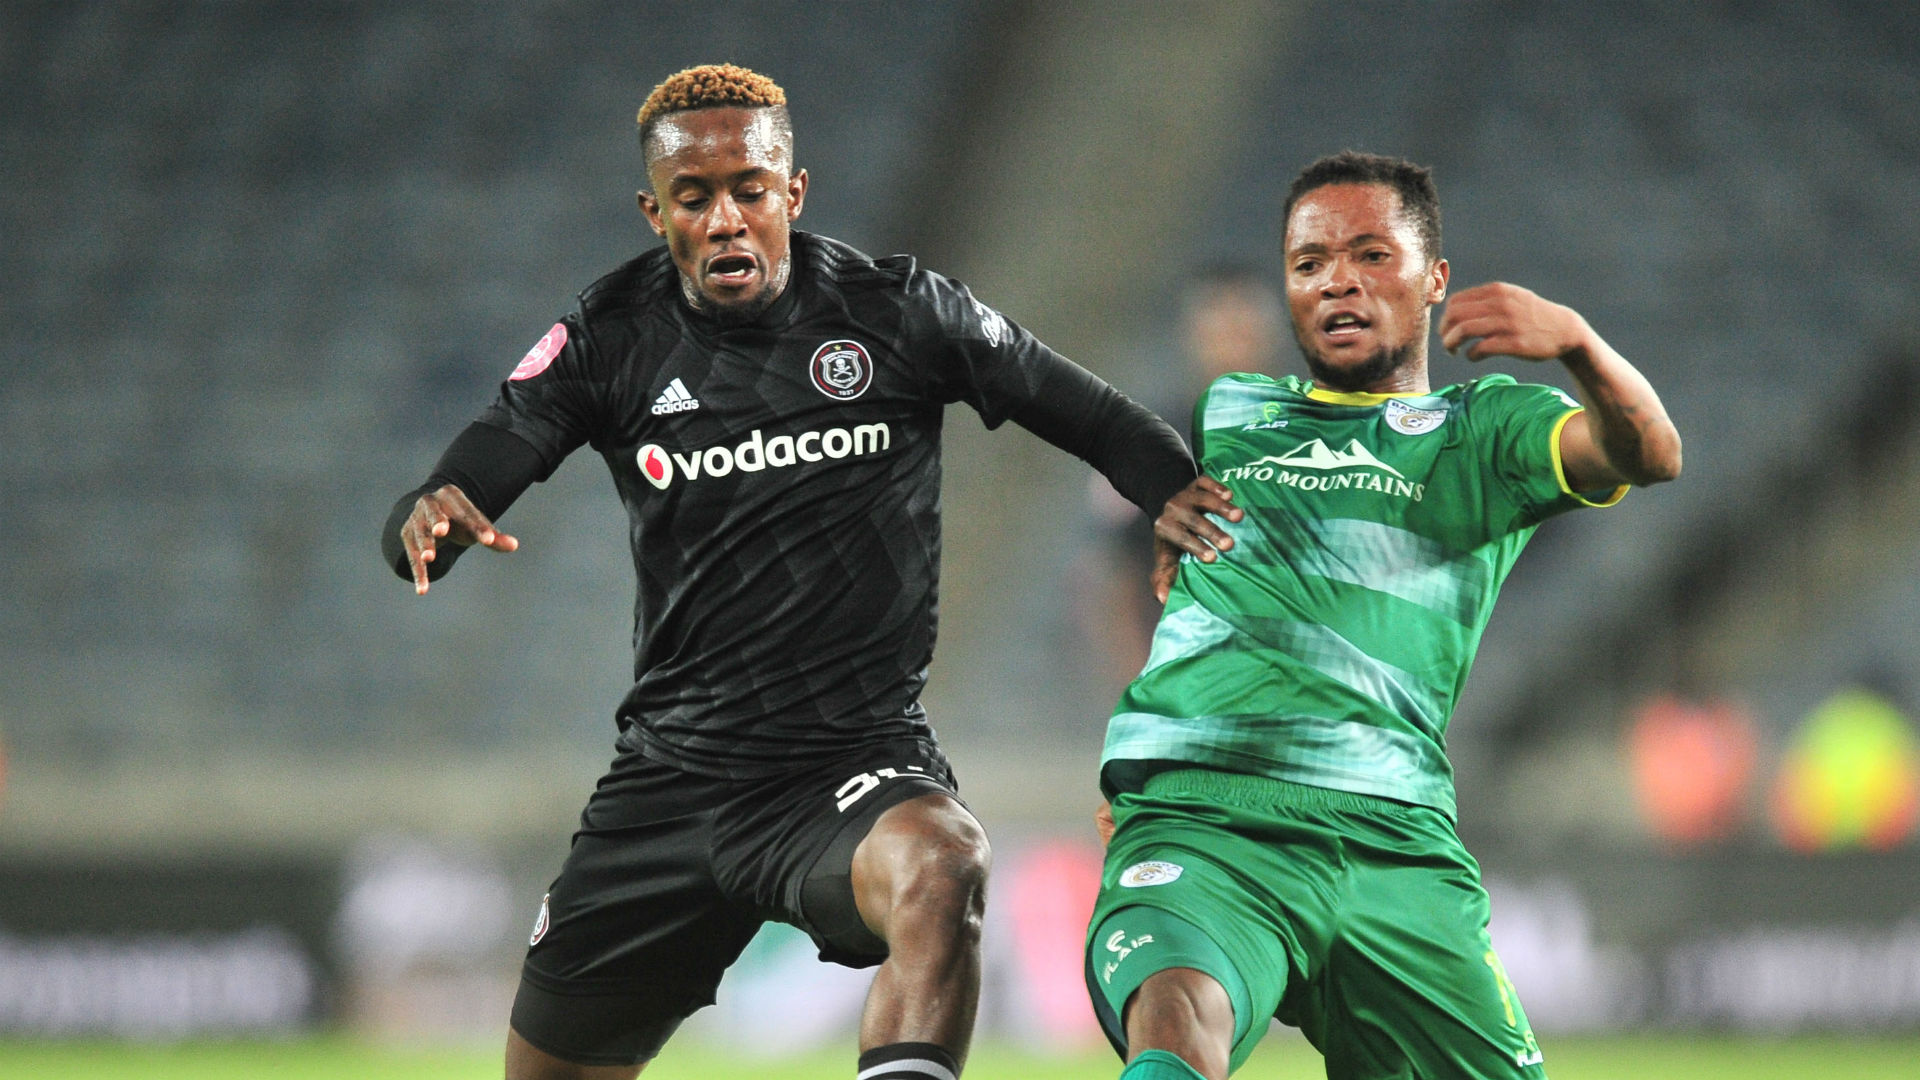 Linda Mntambo, Orlando Pirates & Goodman Mosele, Baroka FC, January 2019